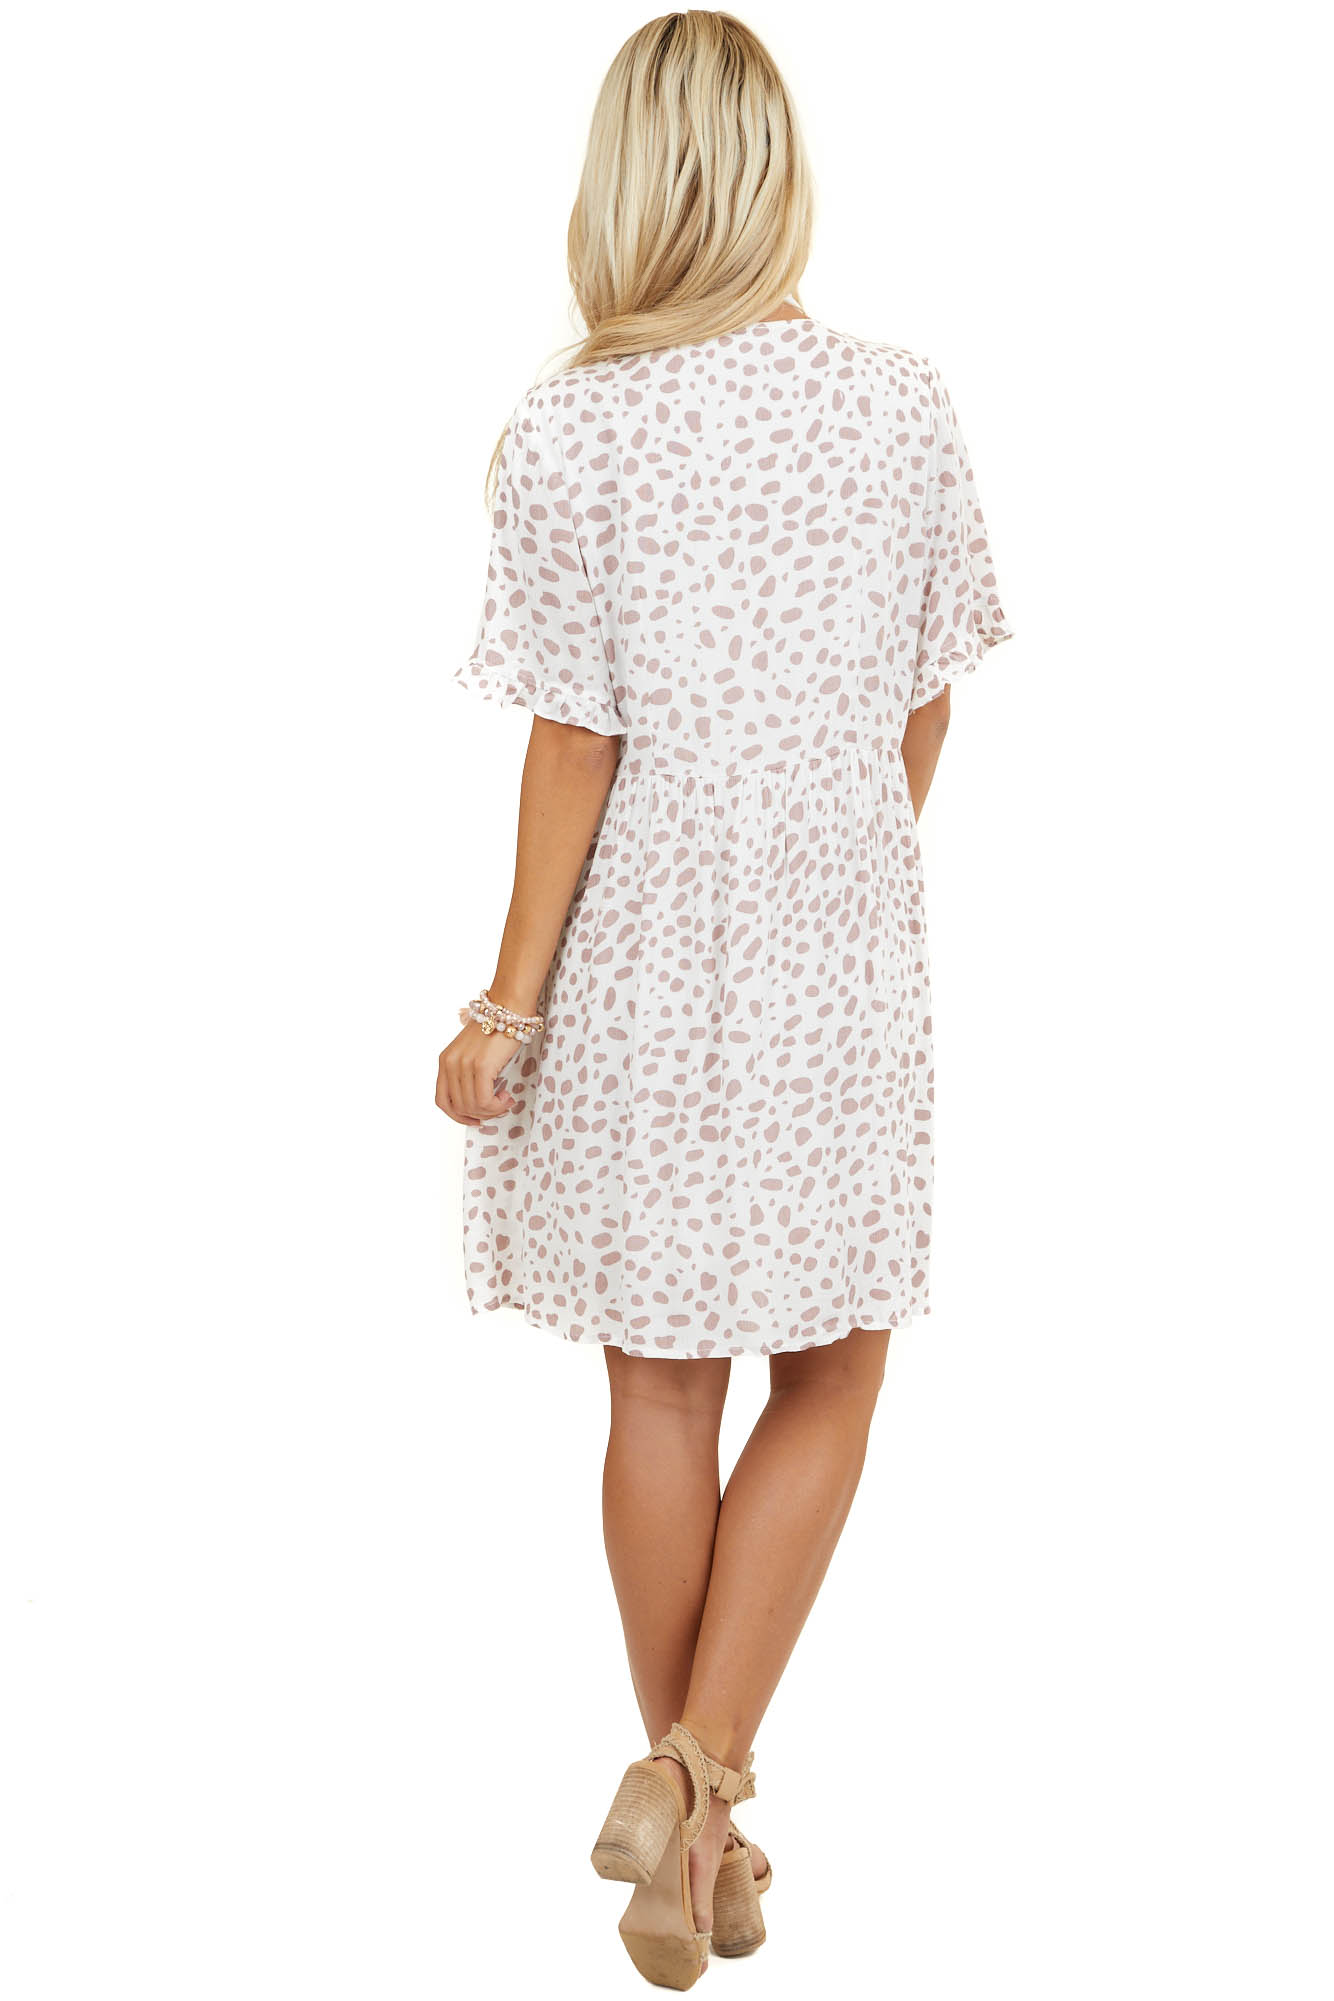 Ivory and Dusty Rose Cheetah Button Up Dress with Pockets